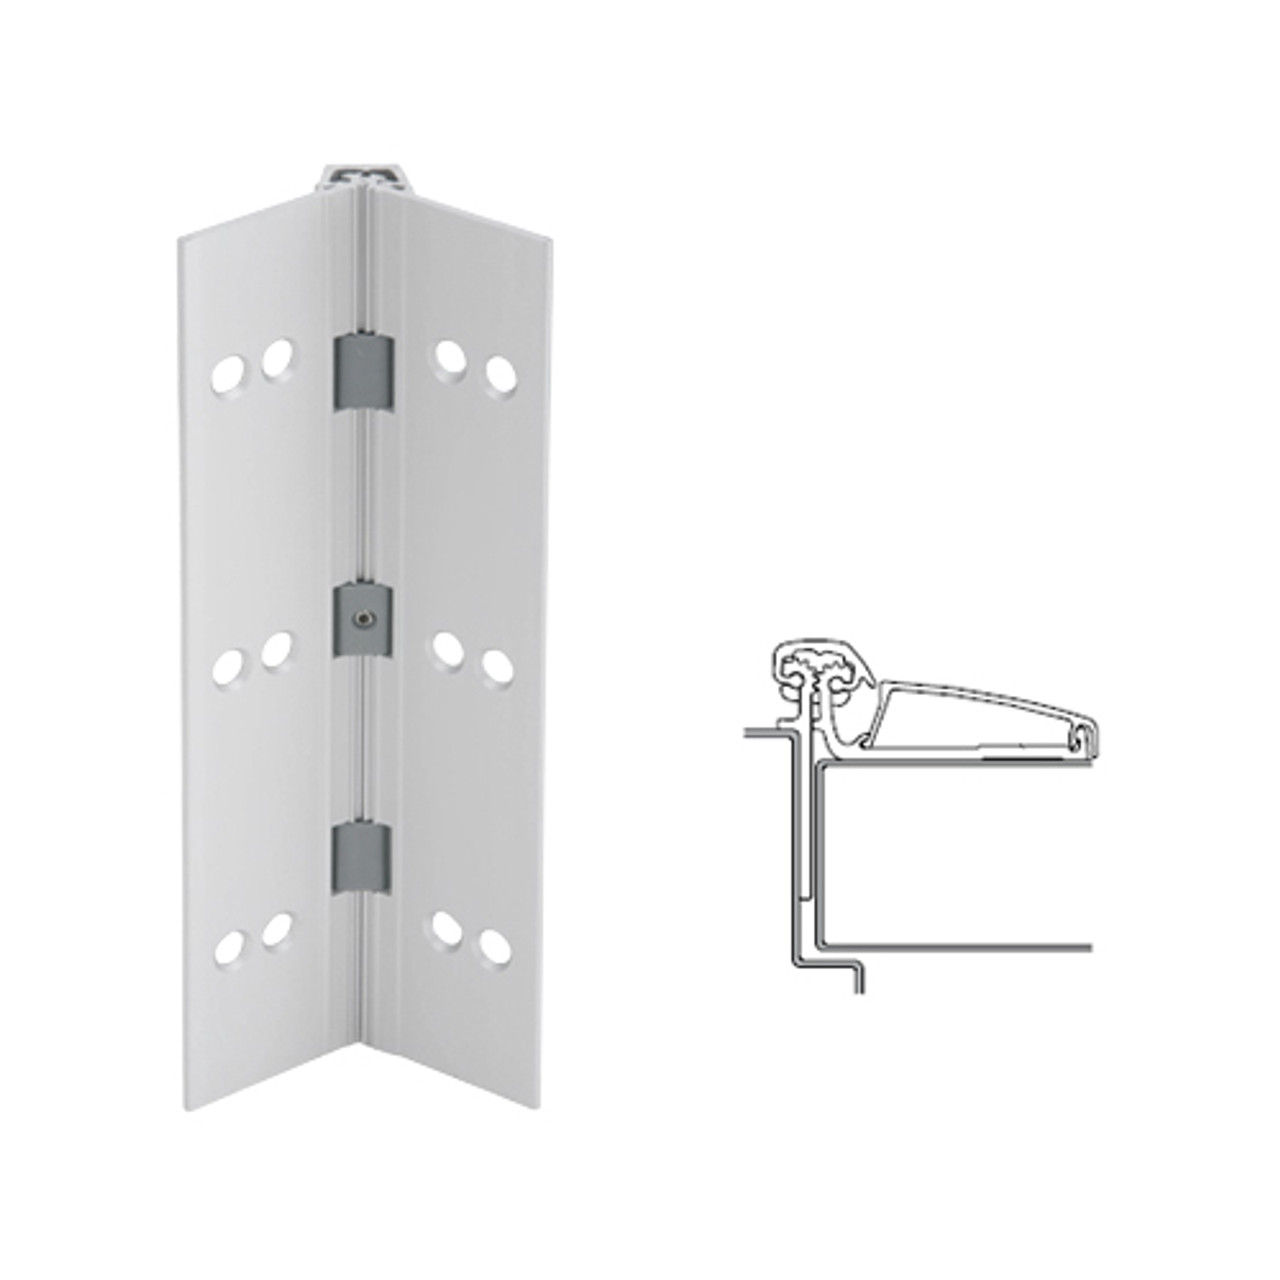 045XY-US28-95-TFWD IVES Adjustable Half Surface Continuous Geared Hinges with Thread Forming Screws in Satin Aluminum